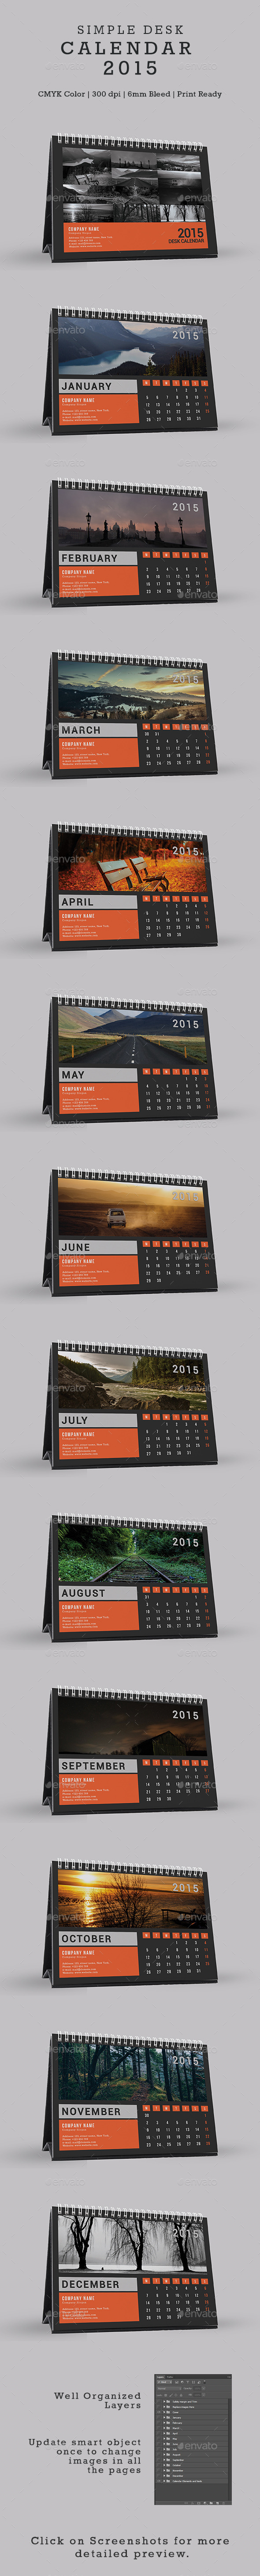 GraphicRiver Simple Desk Calendar 2015 9902552